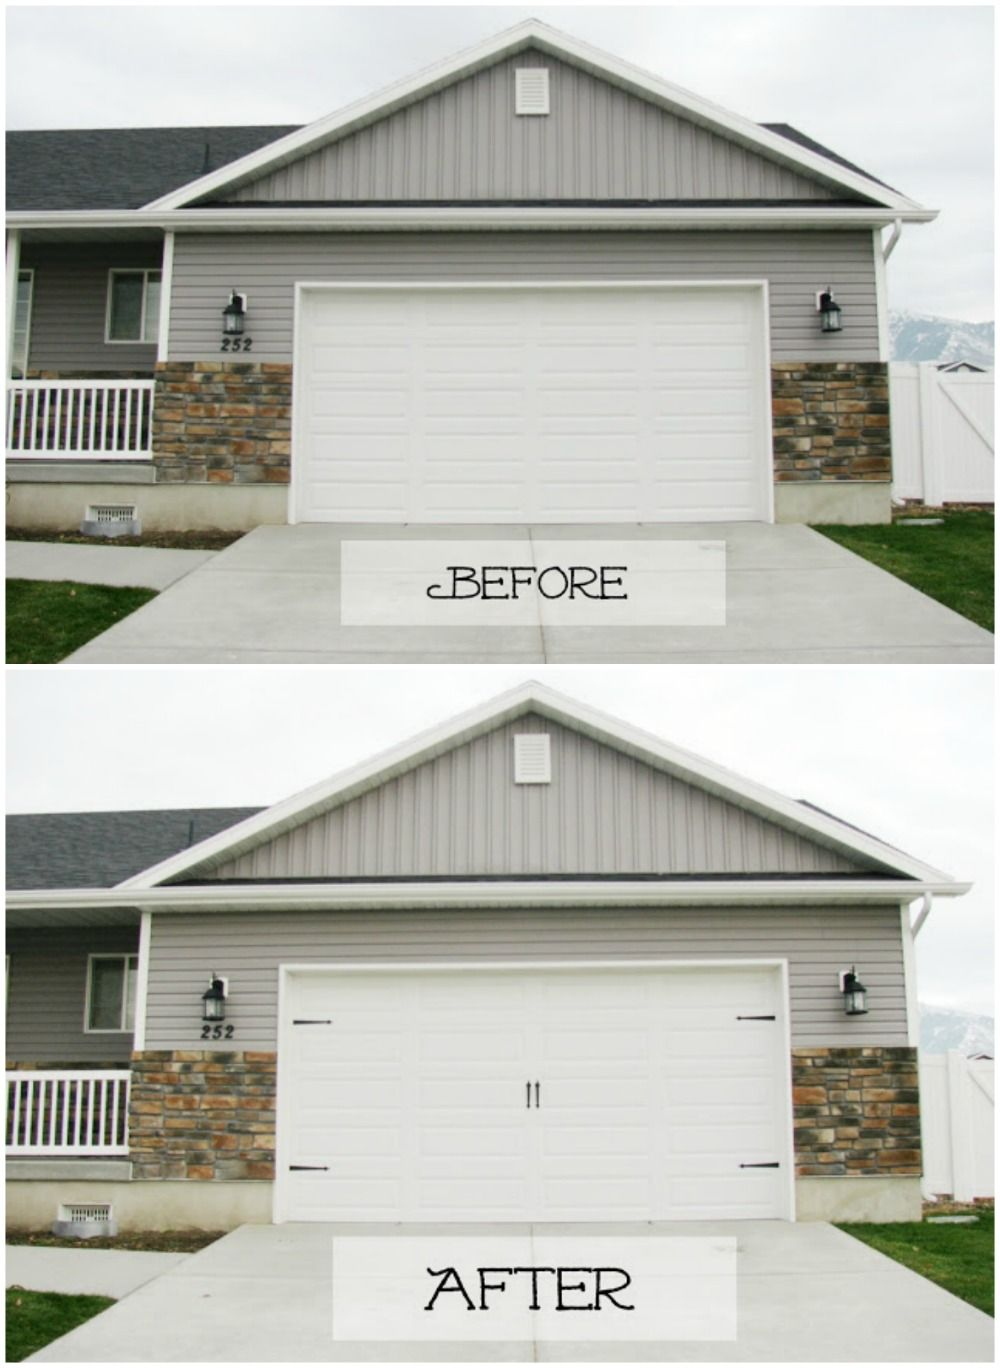 Curb Appeal Hacks To Increase Your Home Value | Curb appeal, Frugal ...